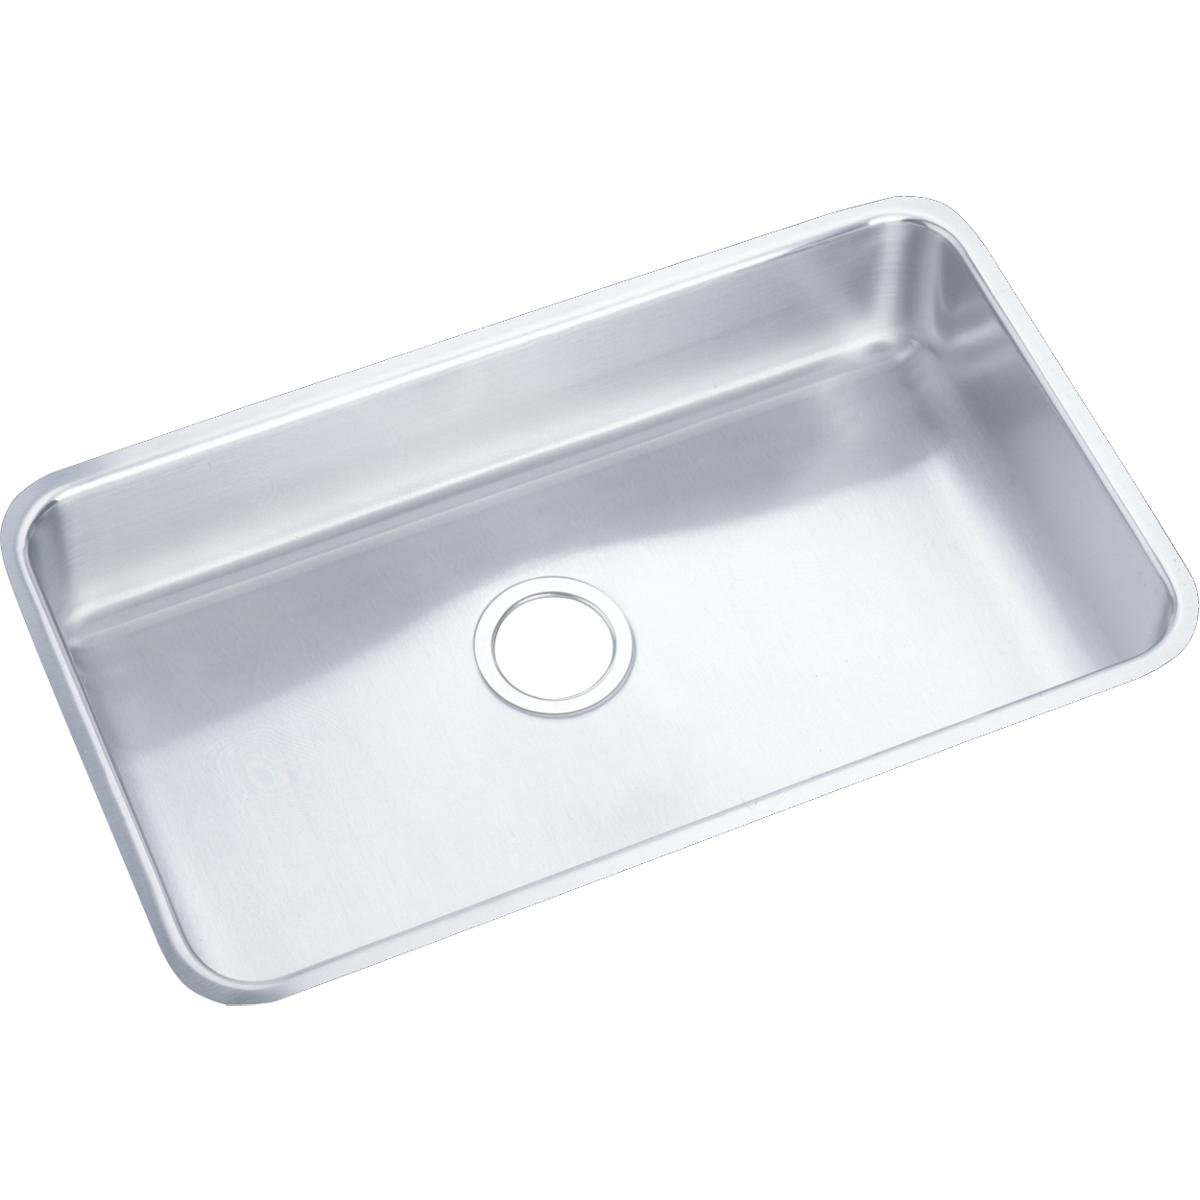 Awesome Elkay Lustertone Eluh2816 Single Bowl Undermount Stainless Steel Kitchen Sink Home Interior And Landscaping Eliaenasavecom